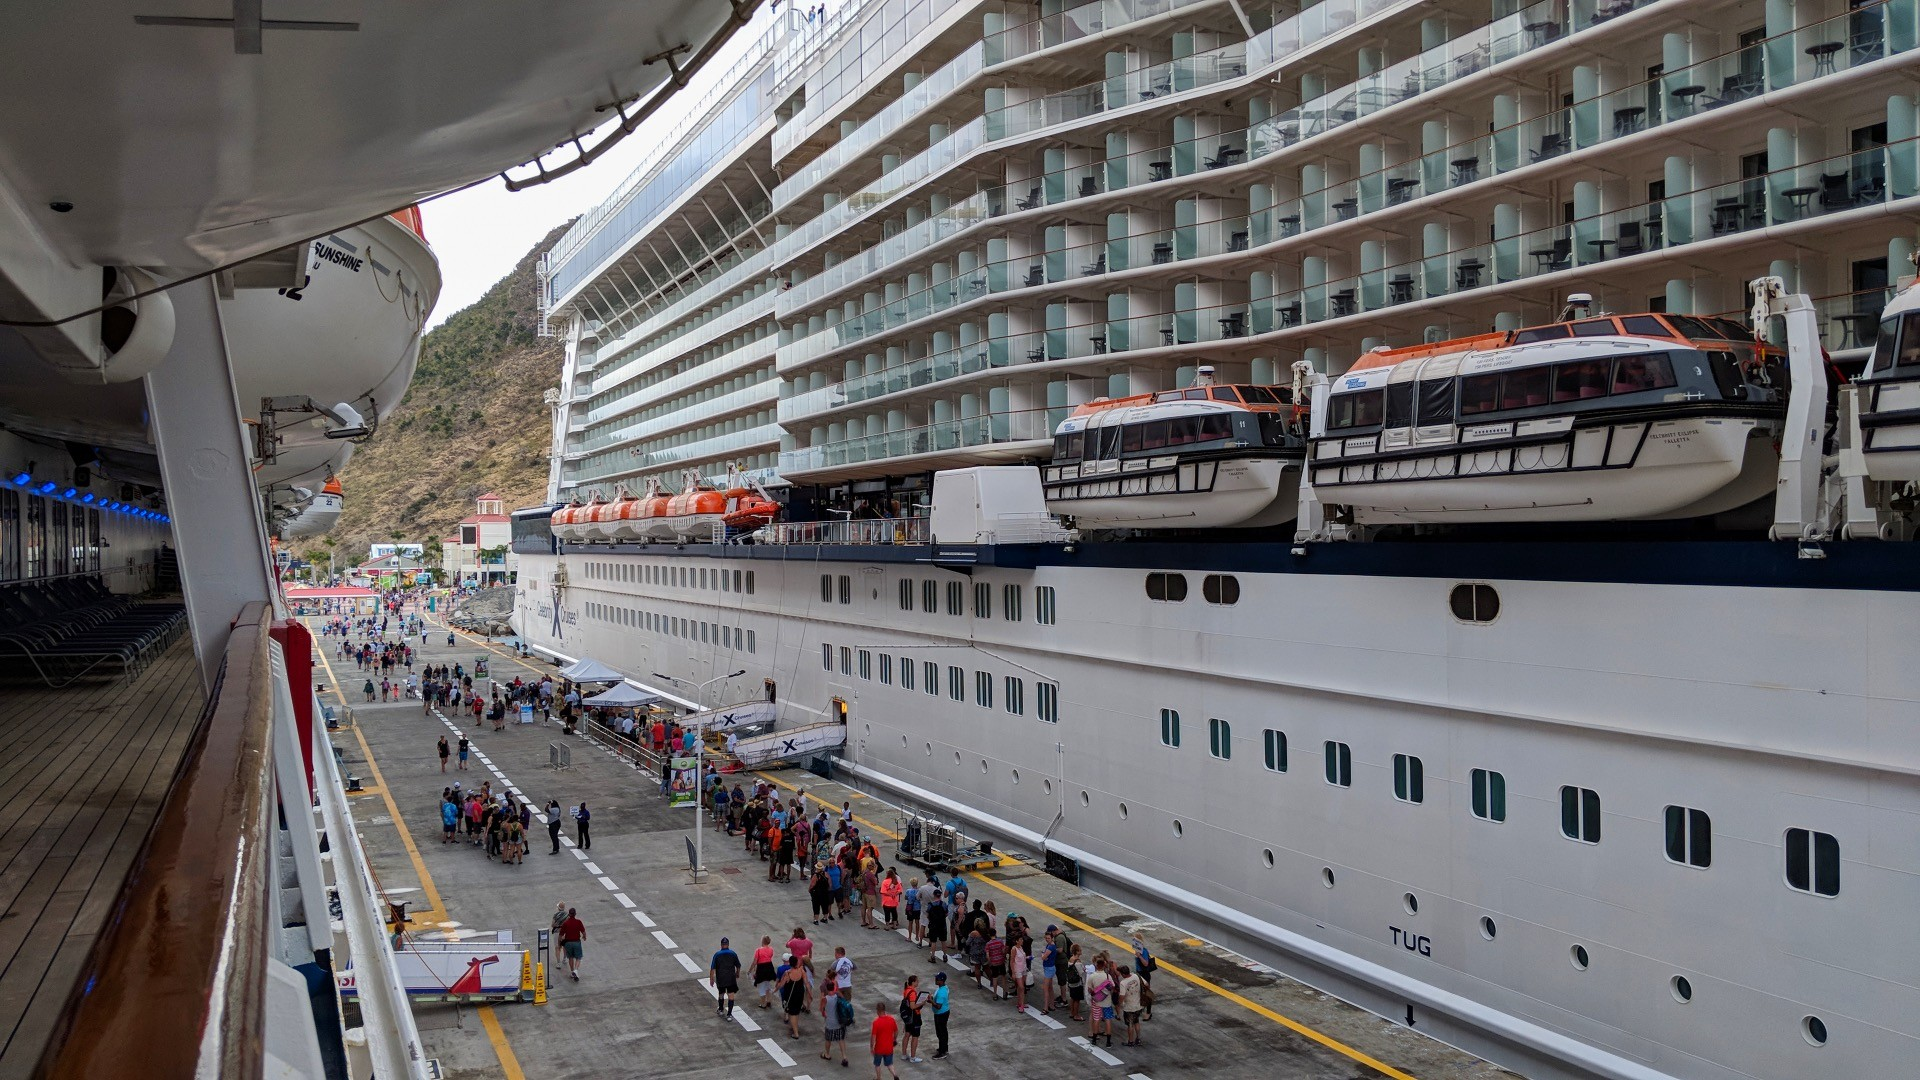 Family Travel Debate: Inside vs Outside Cruise Cabins and Why?